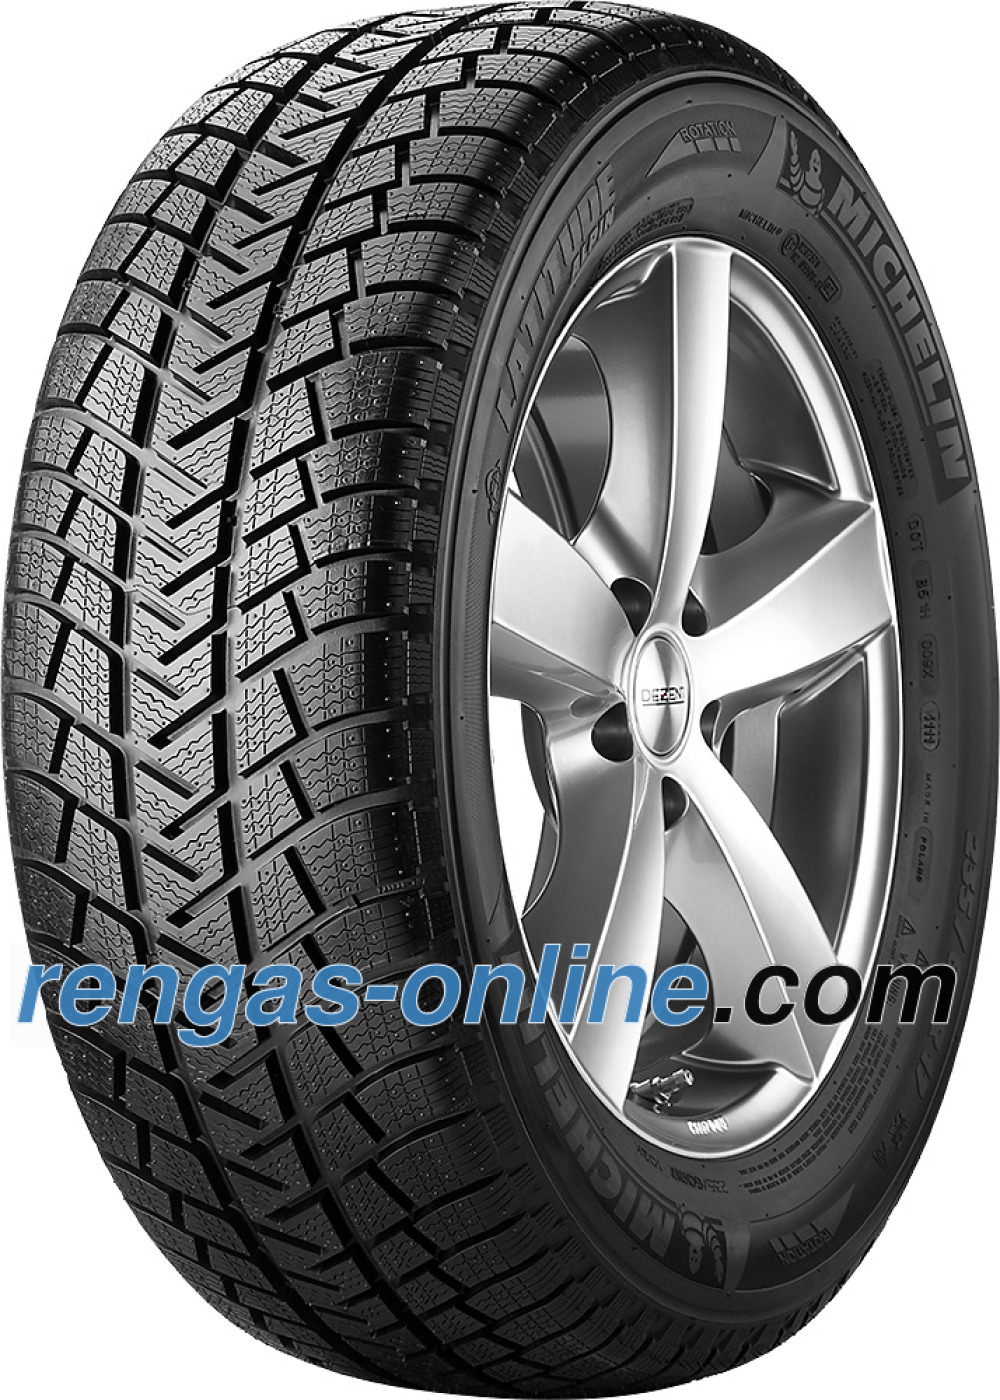 michelin-latitude-alpin-25555-r18-105h-mo-grnx